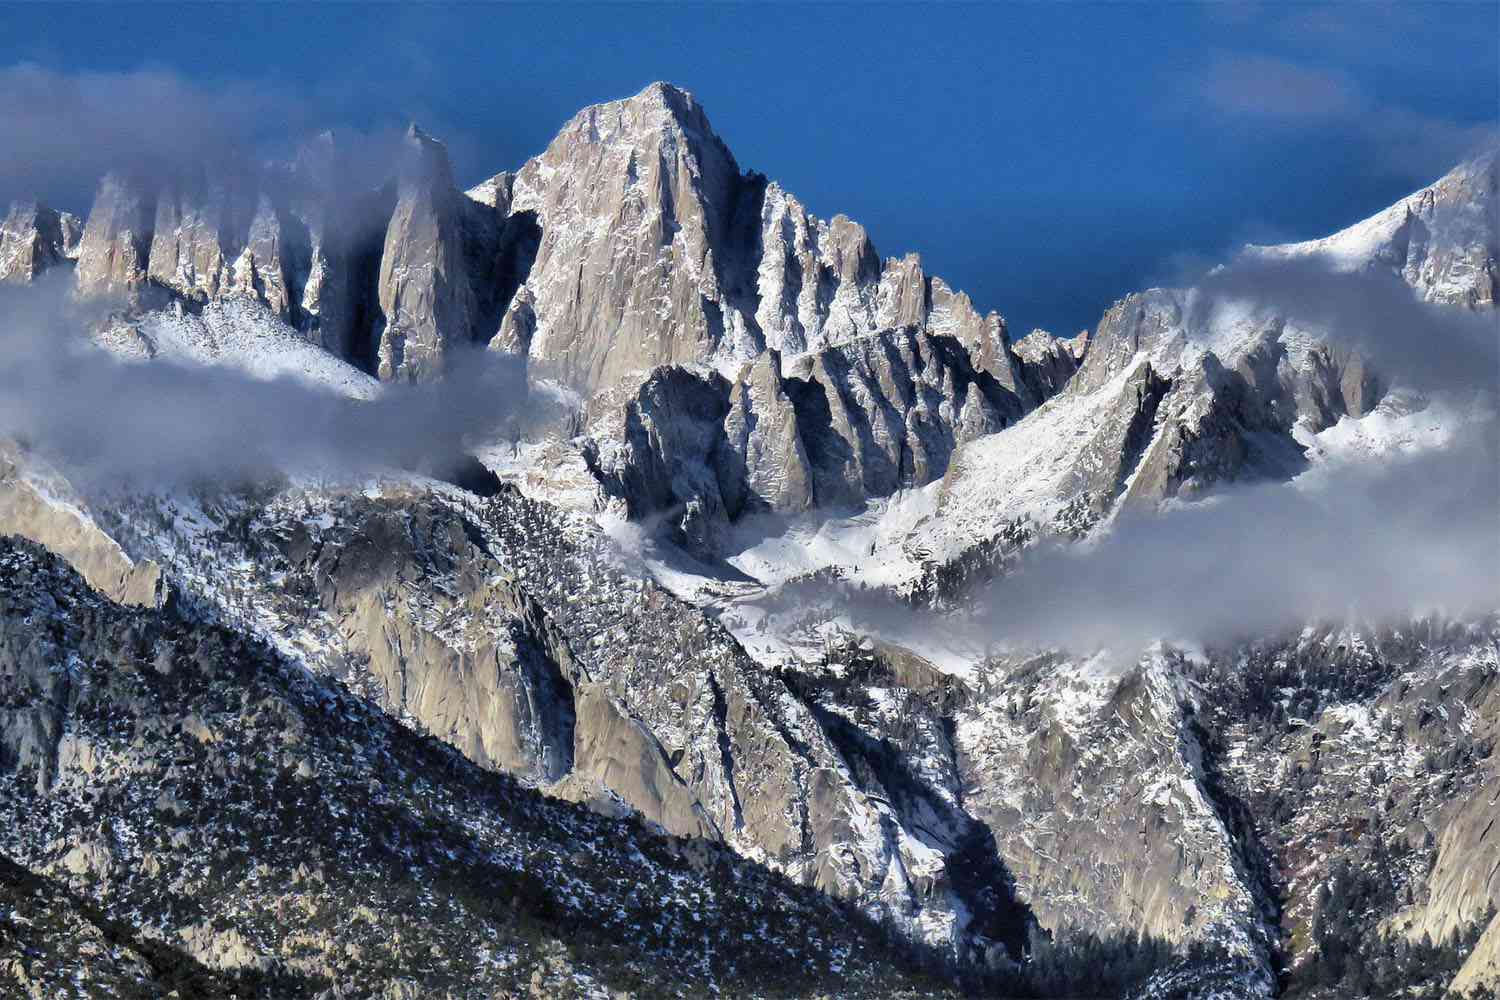 View of Mount Whitney from Lone Pine